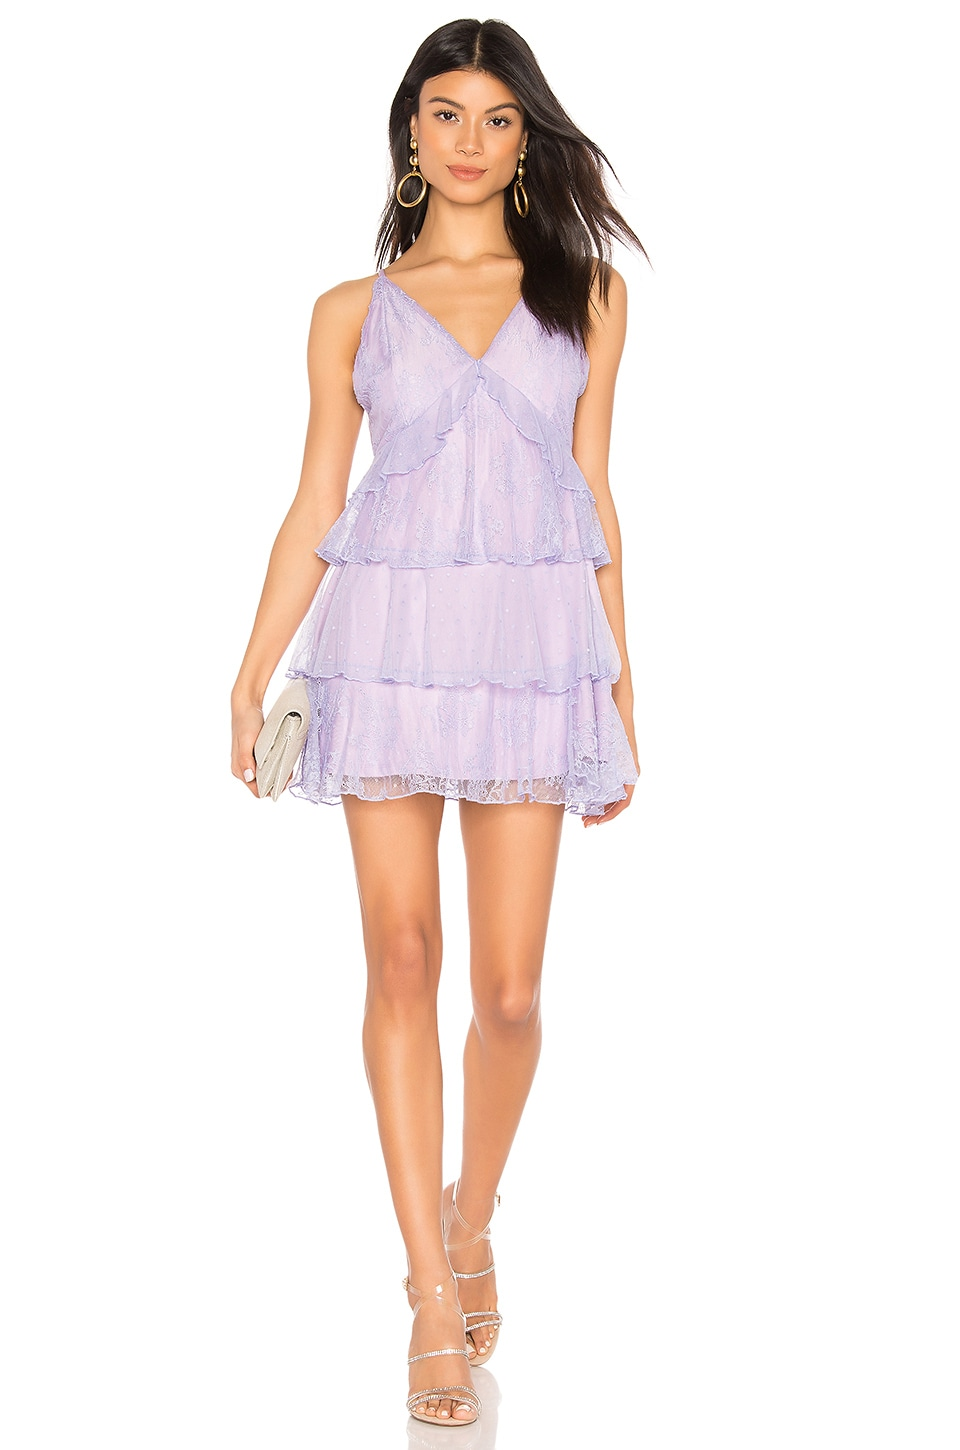 MAJORELLE Nylah Mini Dress in Amethyst Purple